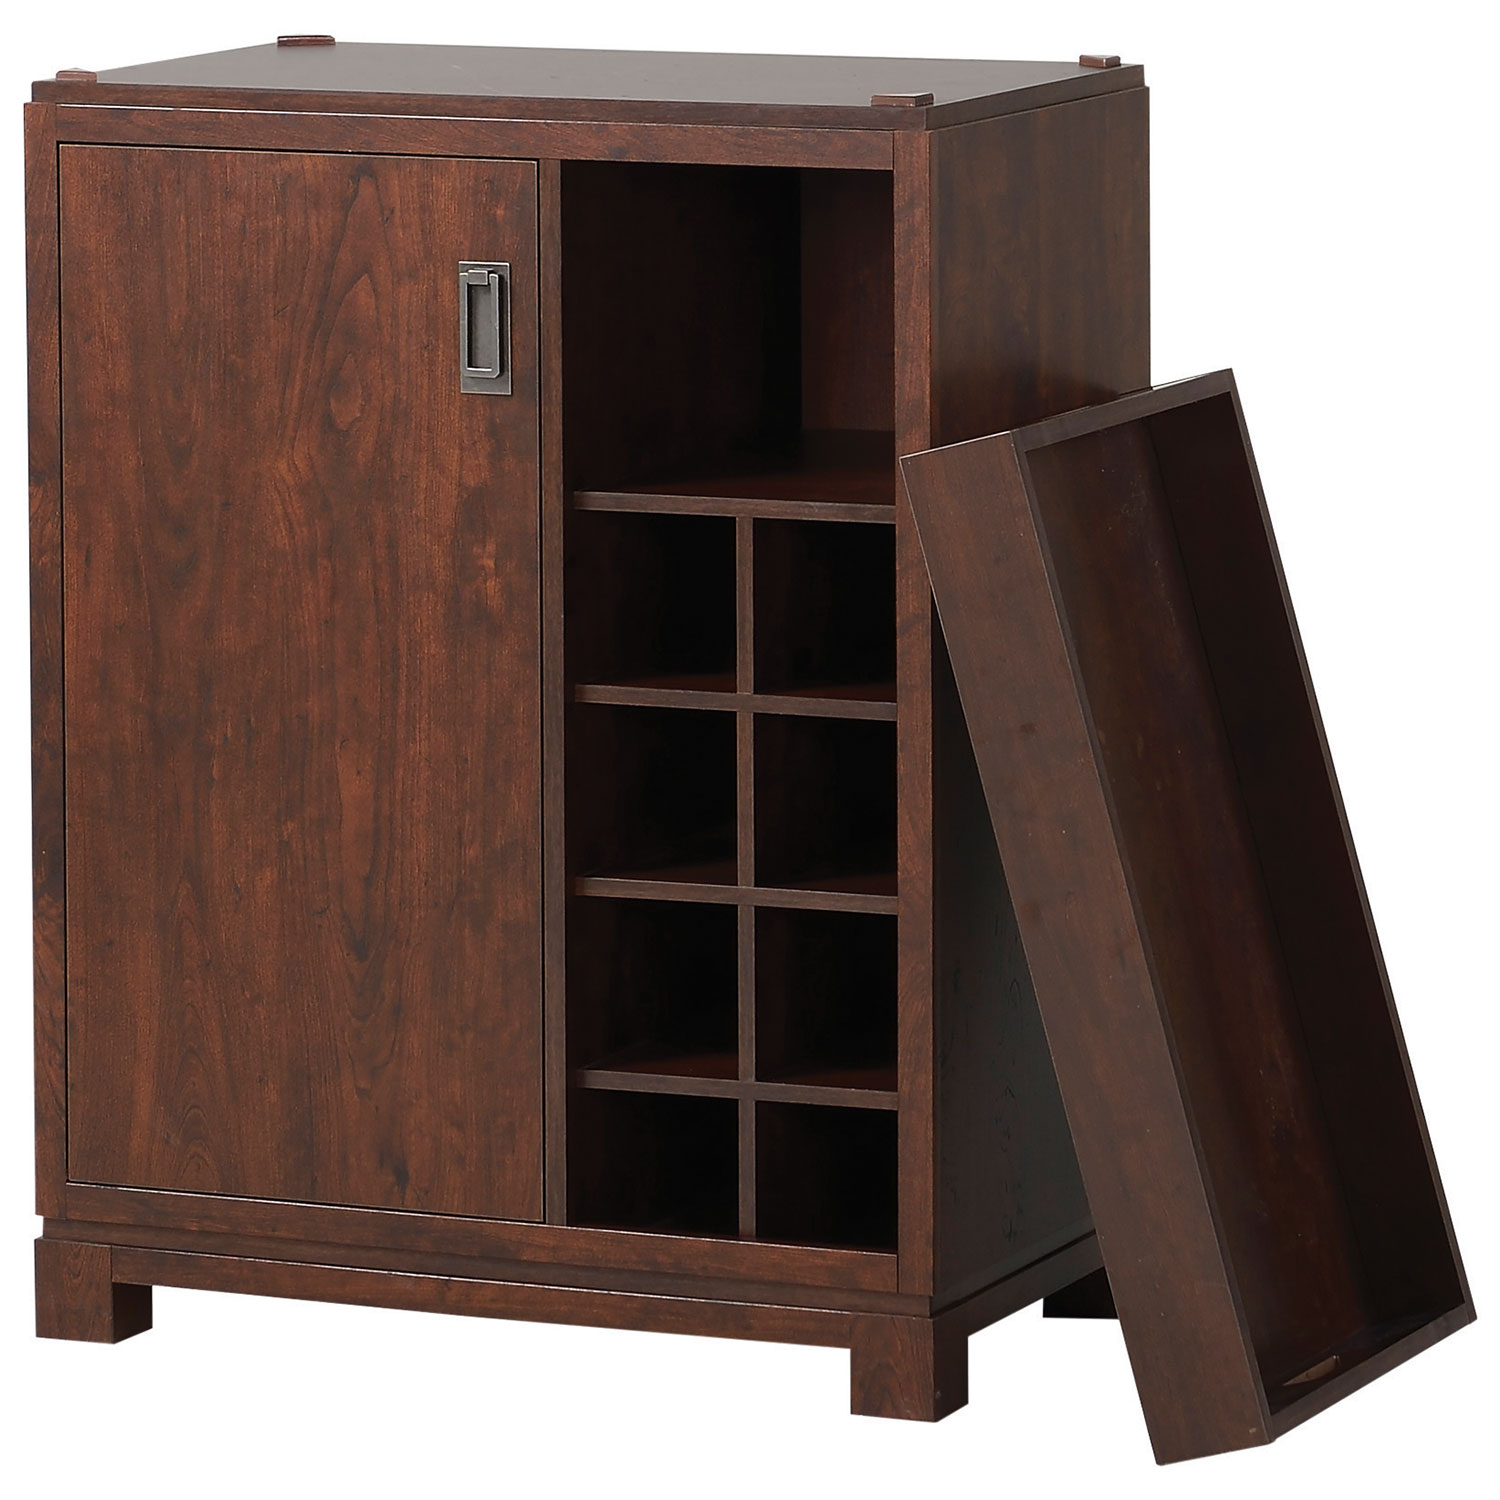 Homestar 3 Shelf Wine Cabinet   Brown   Buffets   Cabinets   Best Buy Canada. Homestar 3 Shelf Wine Cabinet   Brown   Buffets   Cabinets   Best